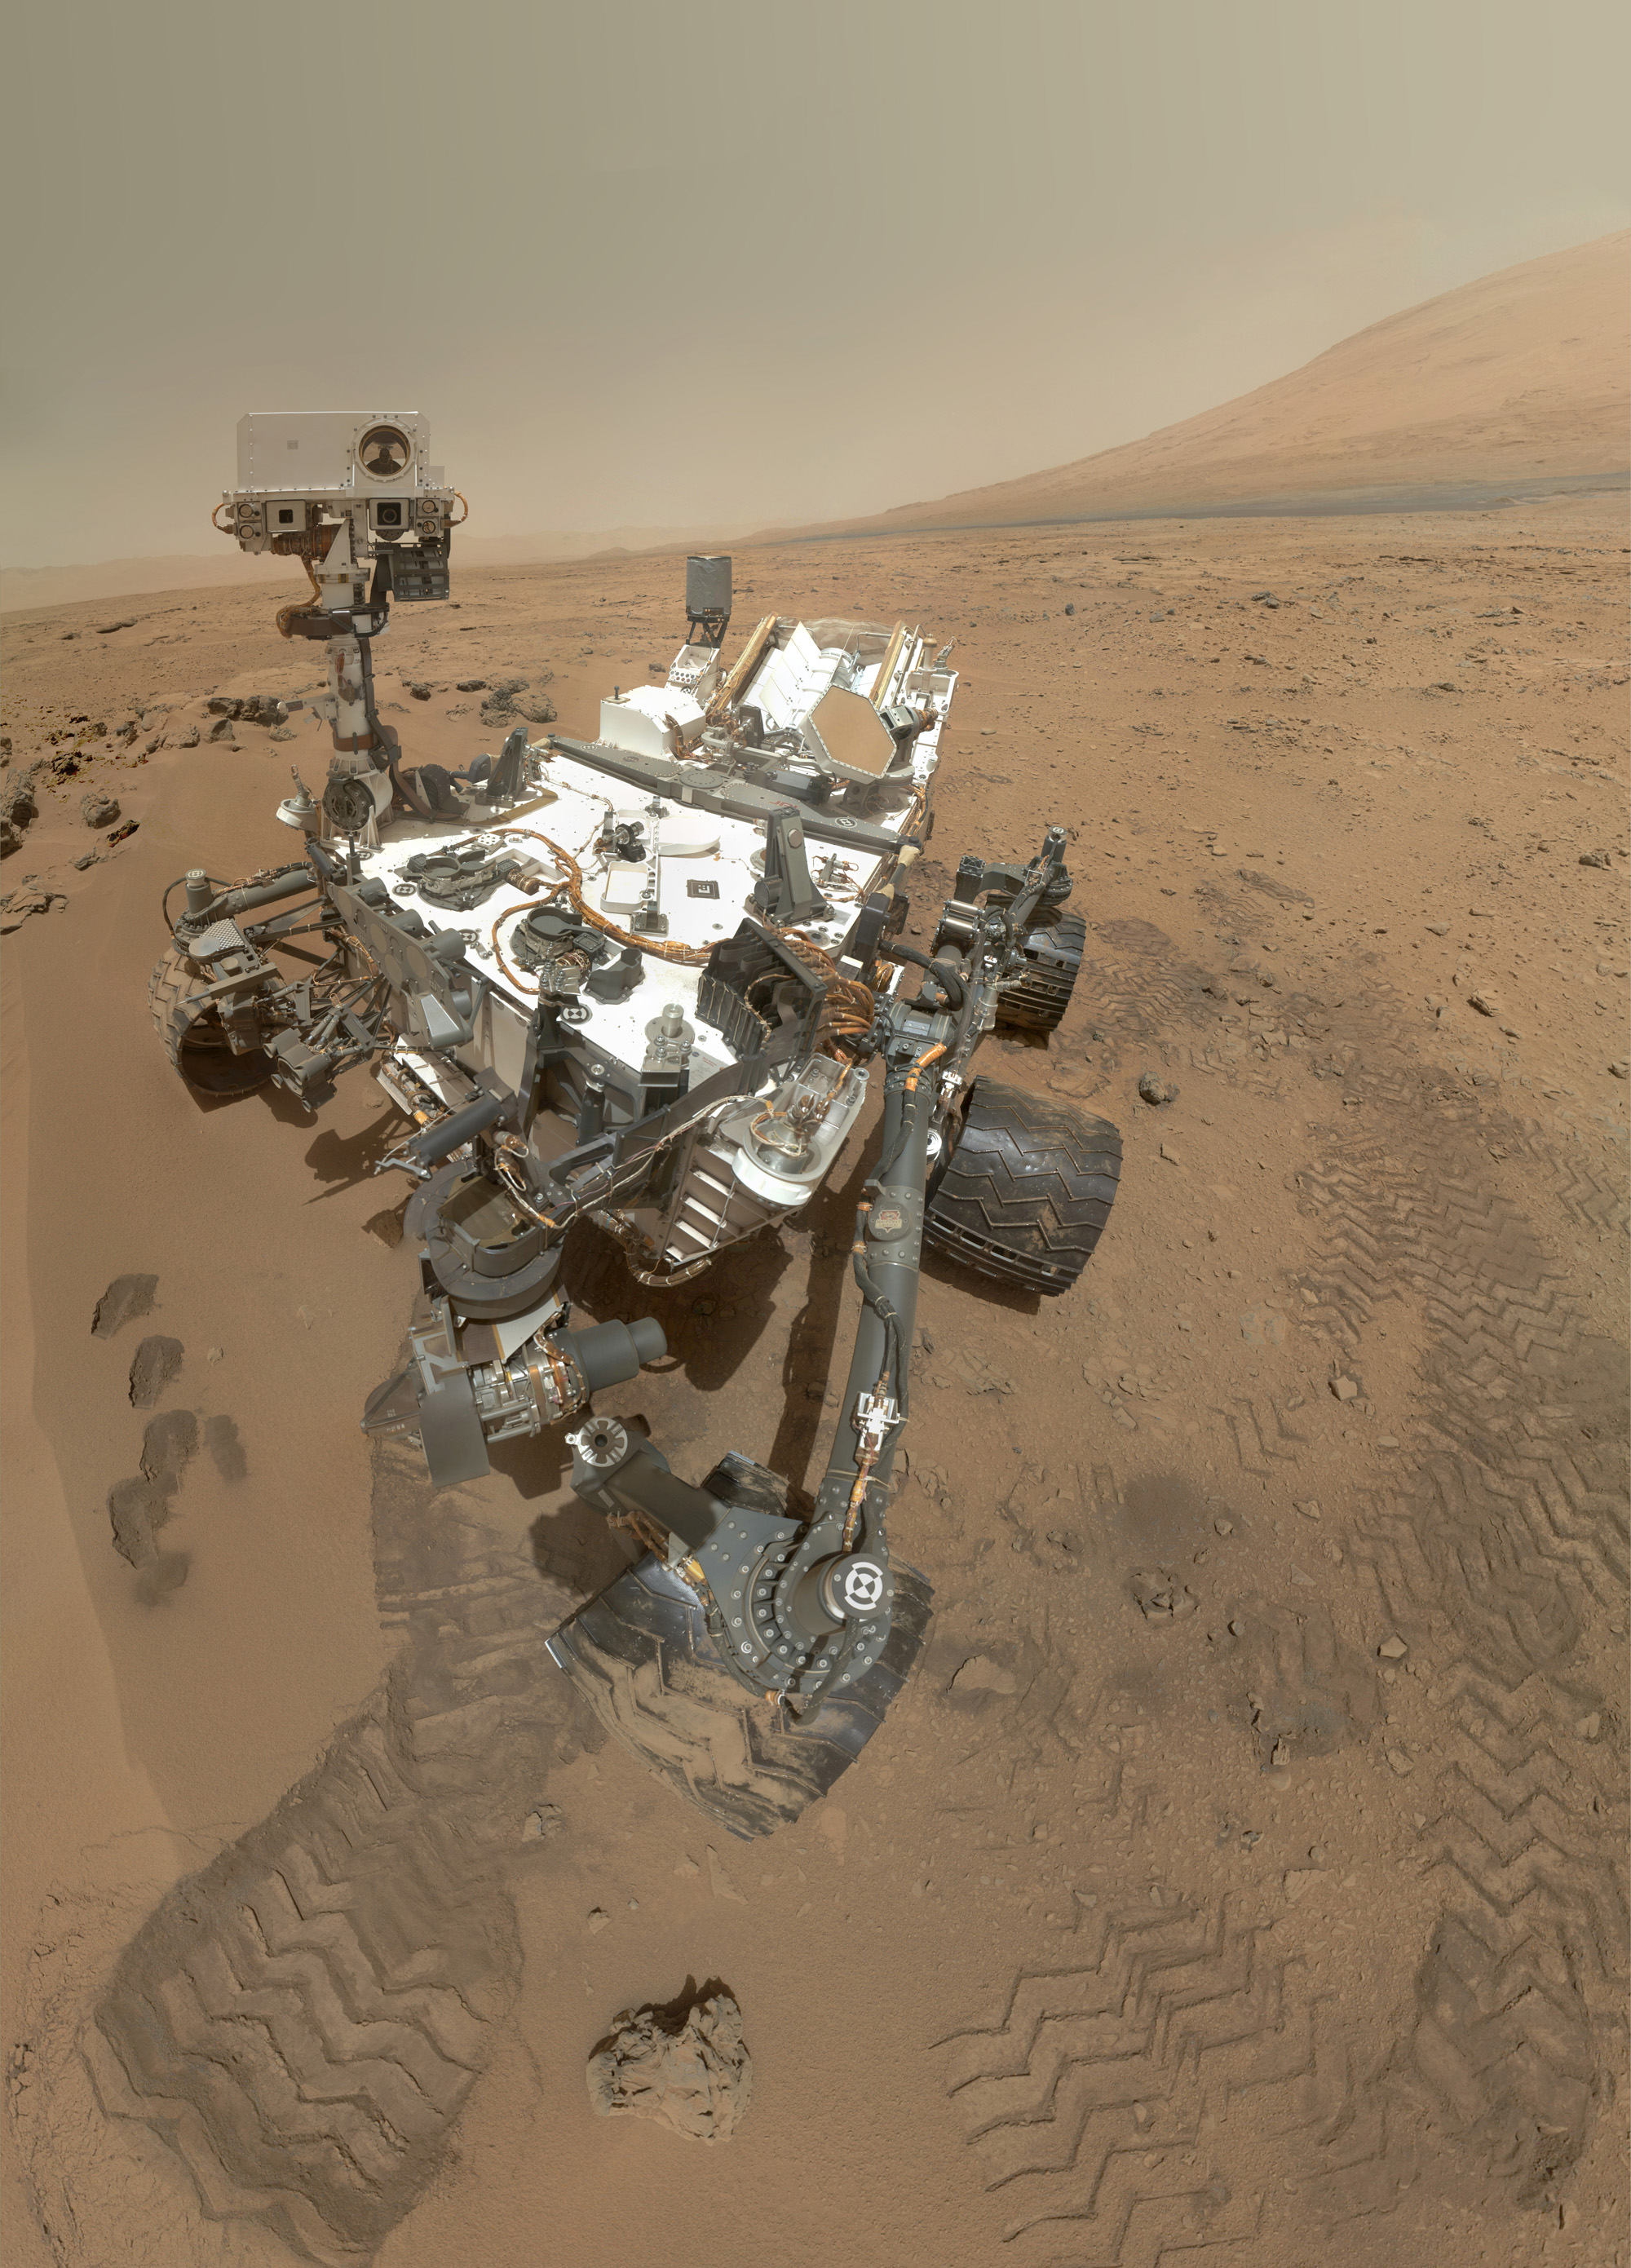 Curiosity Rover Snaps Stunning Self-Portrait on Red Planet